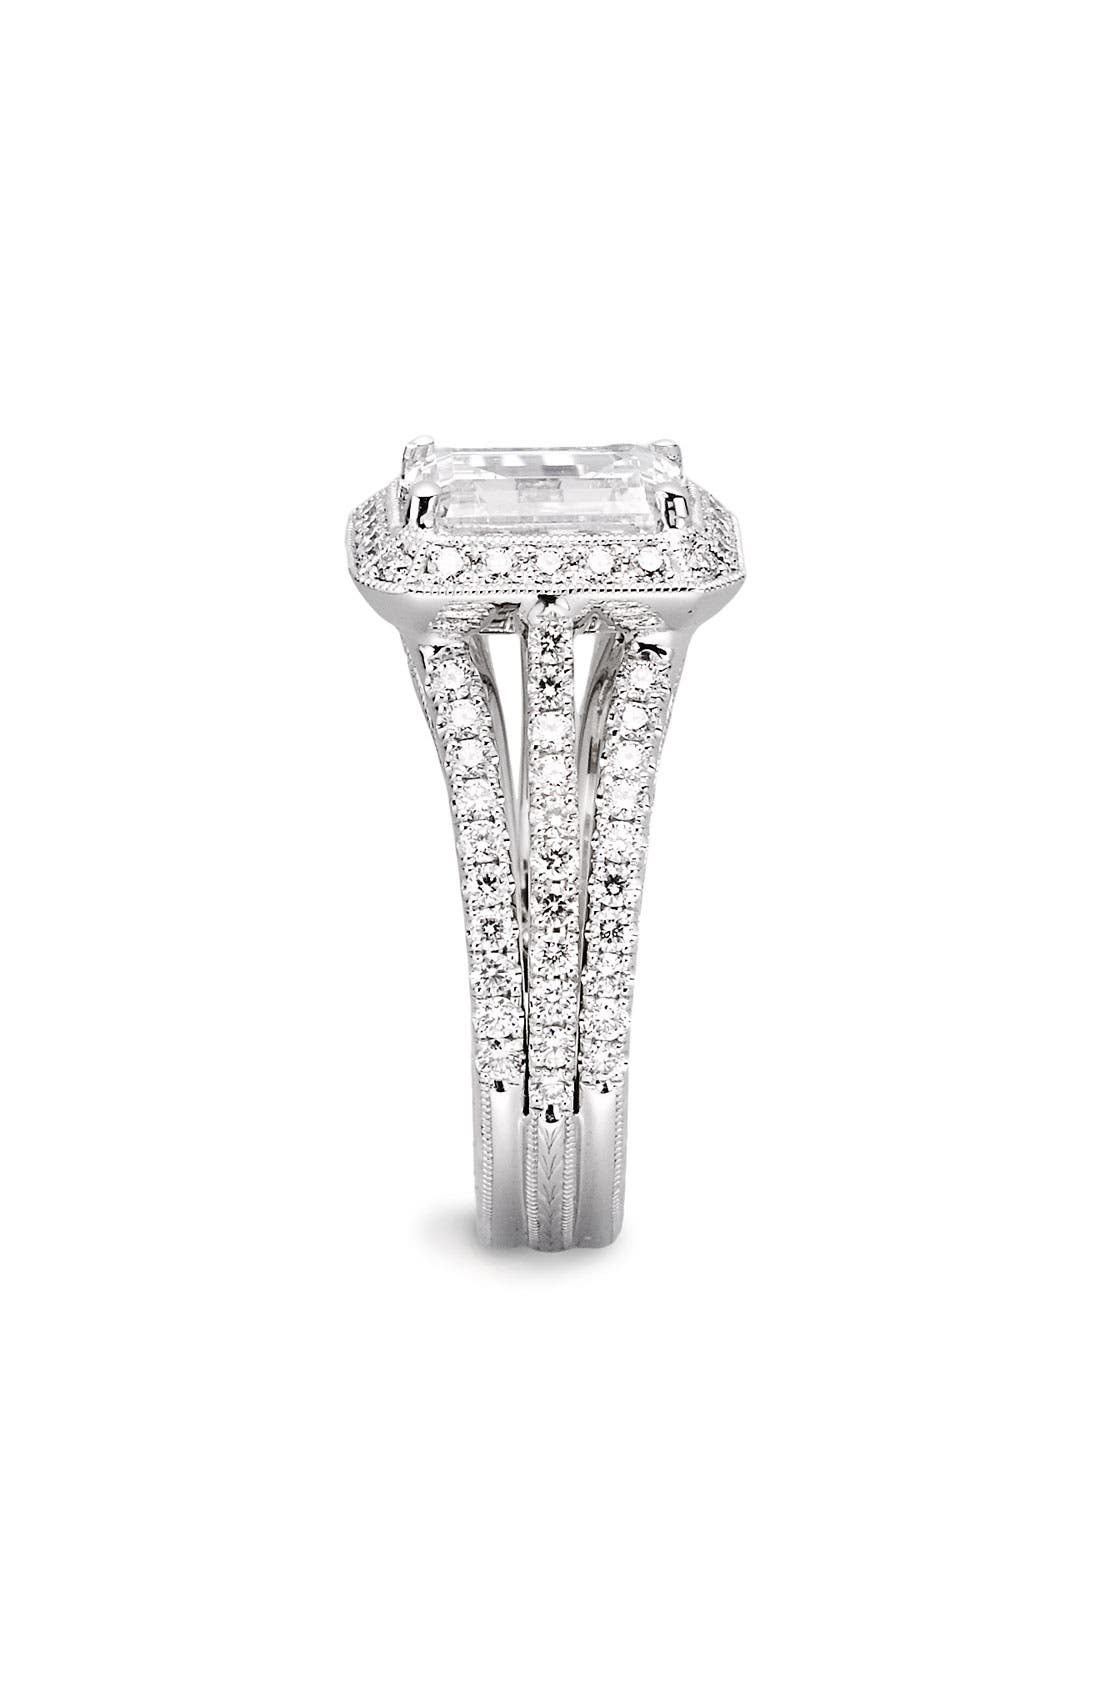 Alternate Image 2  - Jack Kelége 'Romance' Emerald Cut Diamond Engagement Ring Setting